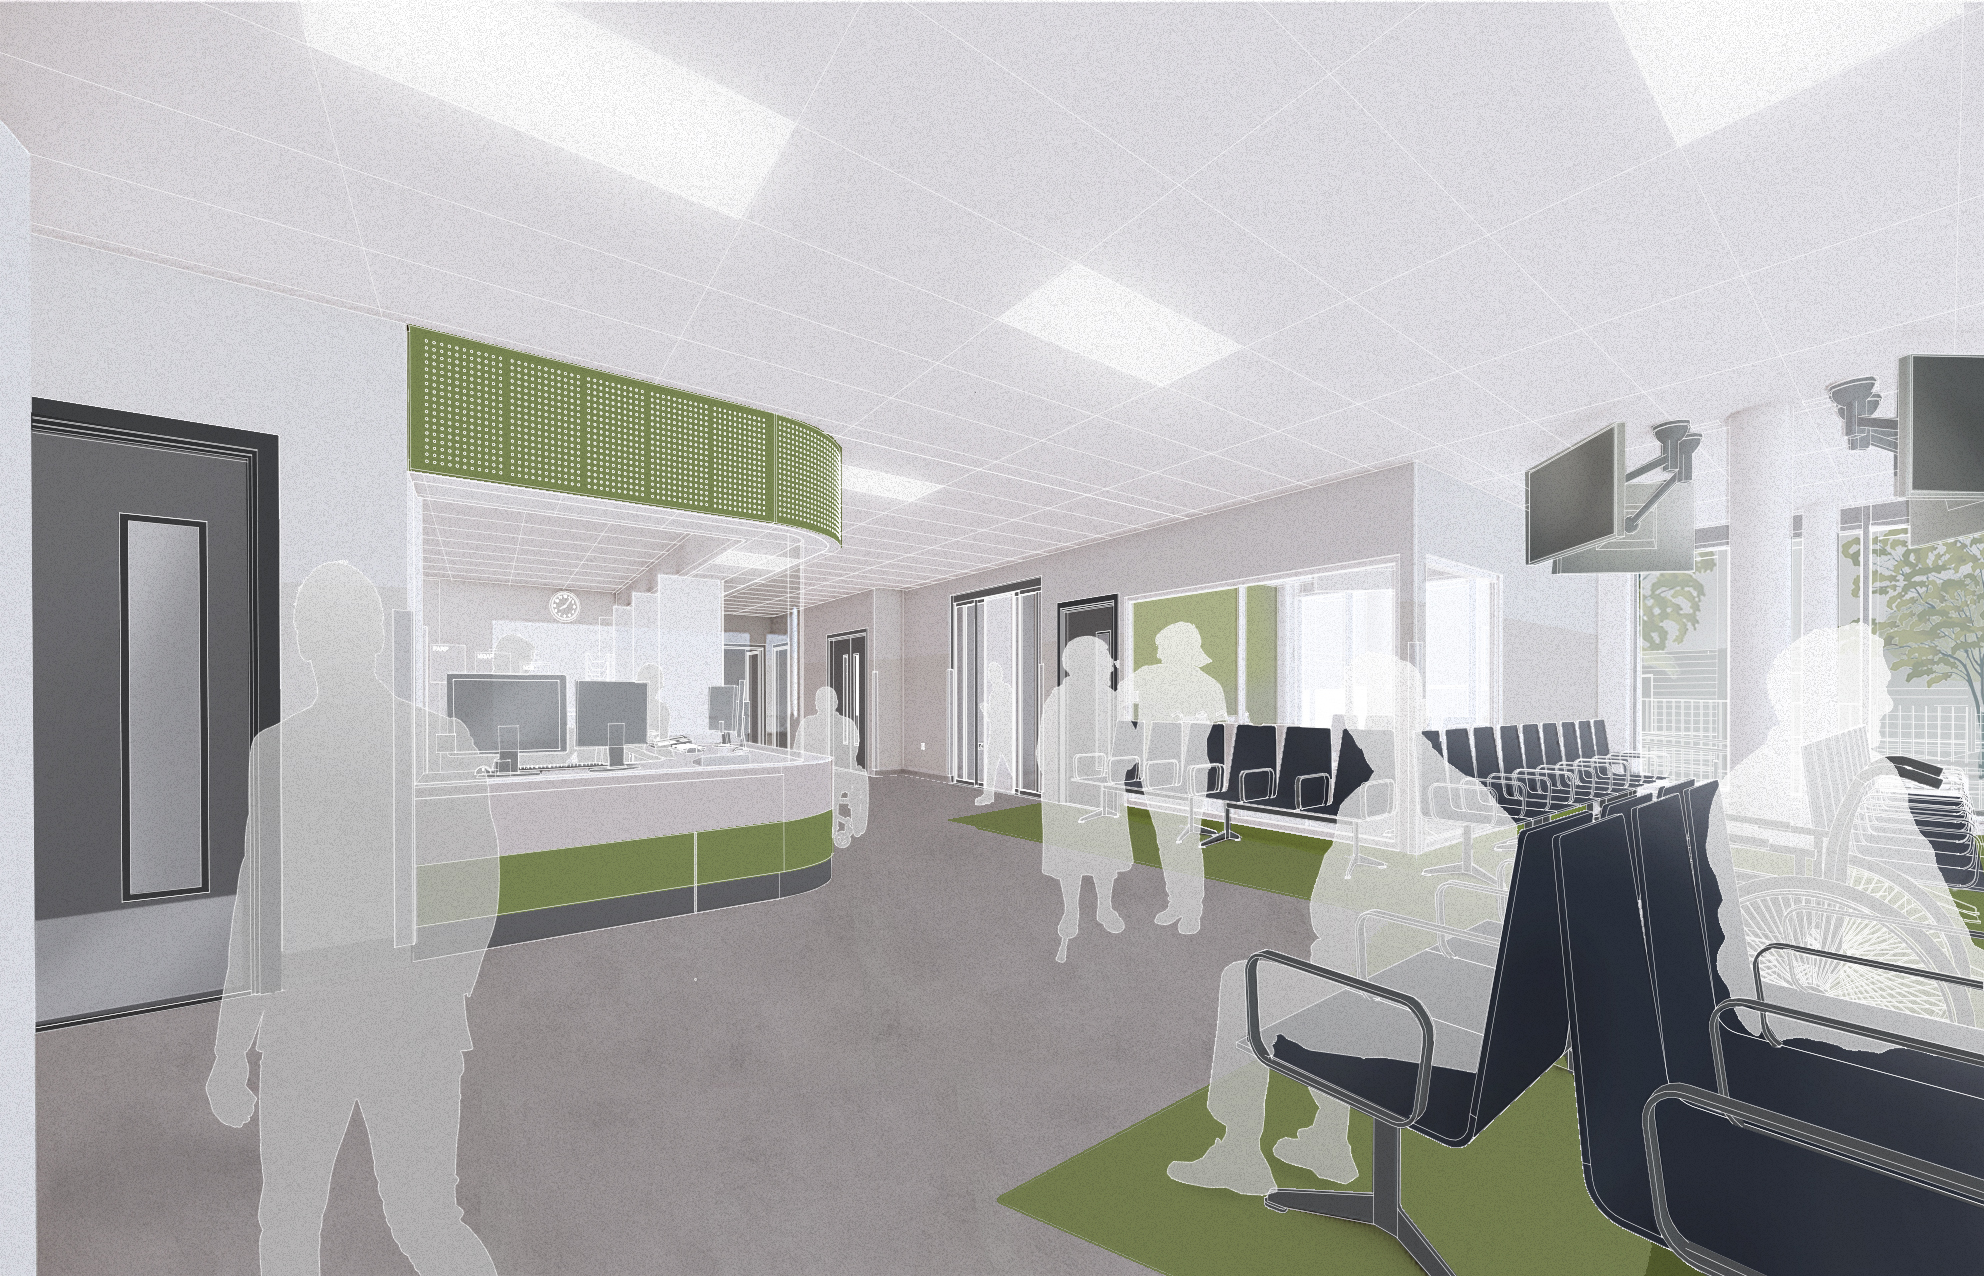 Artist's impression of a waiting area